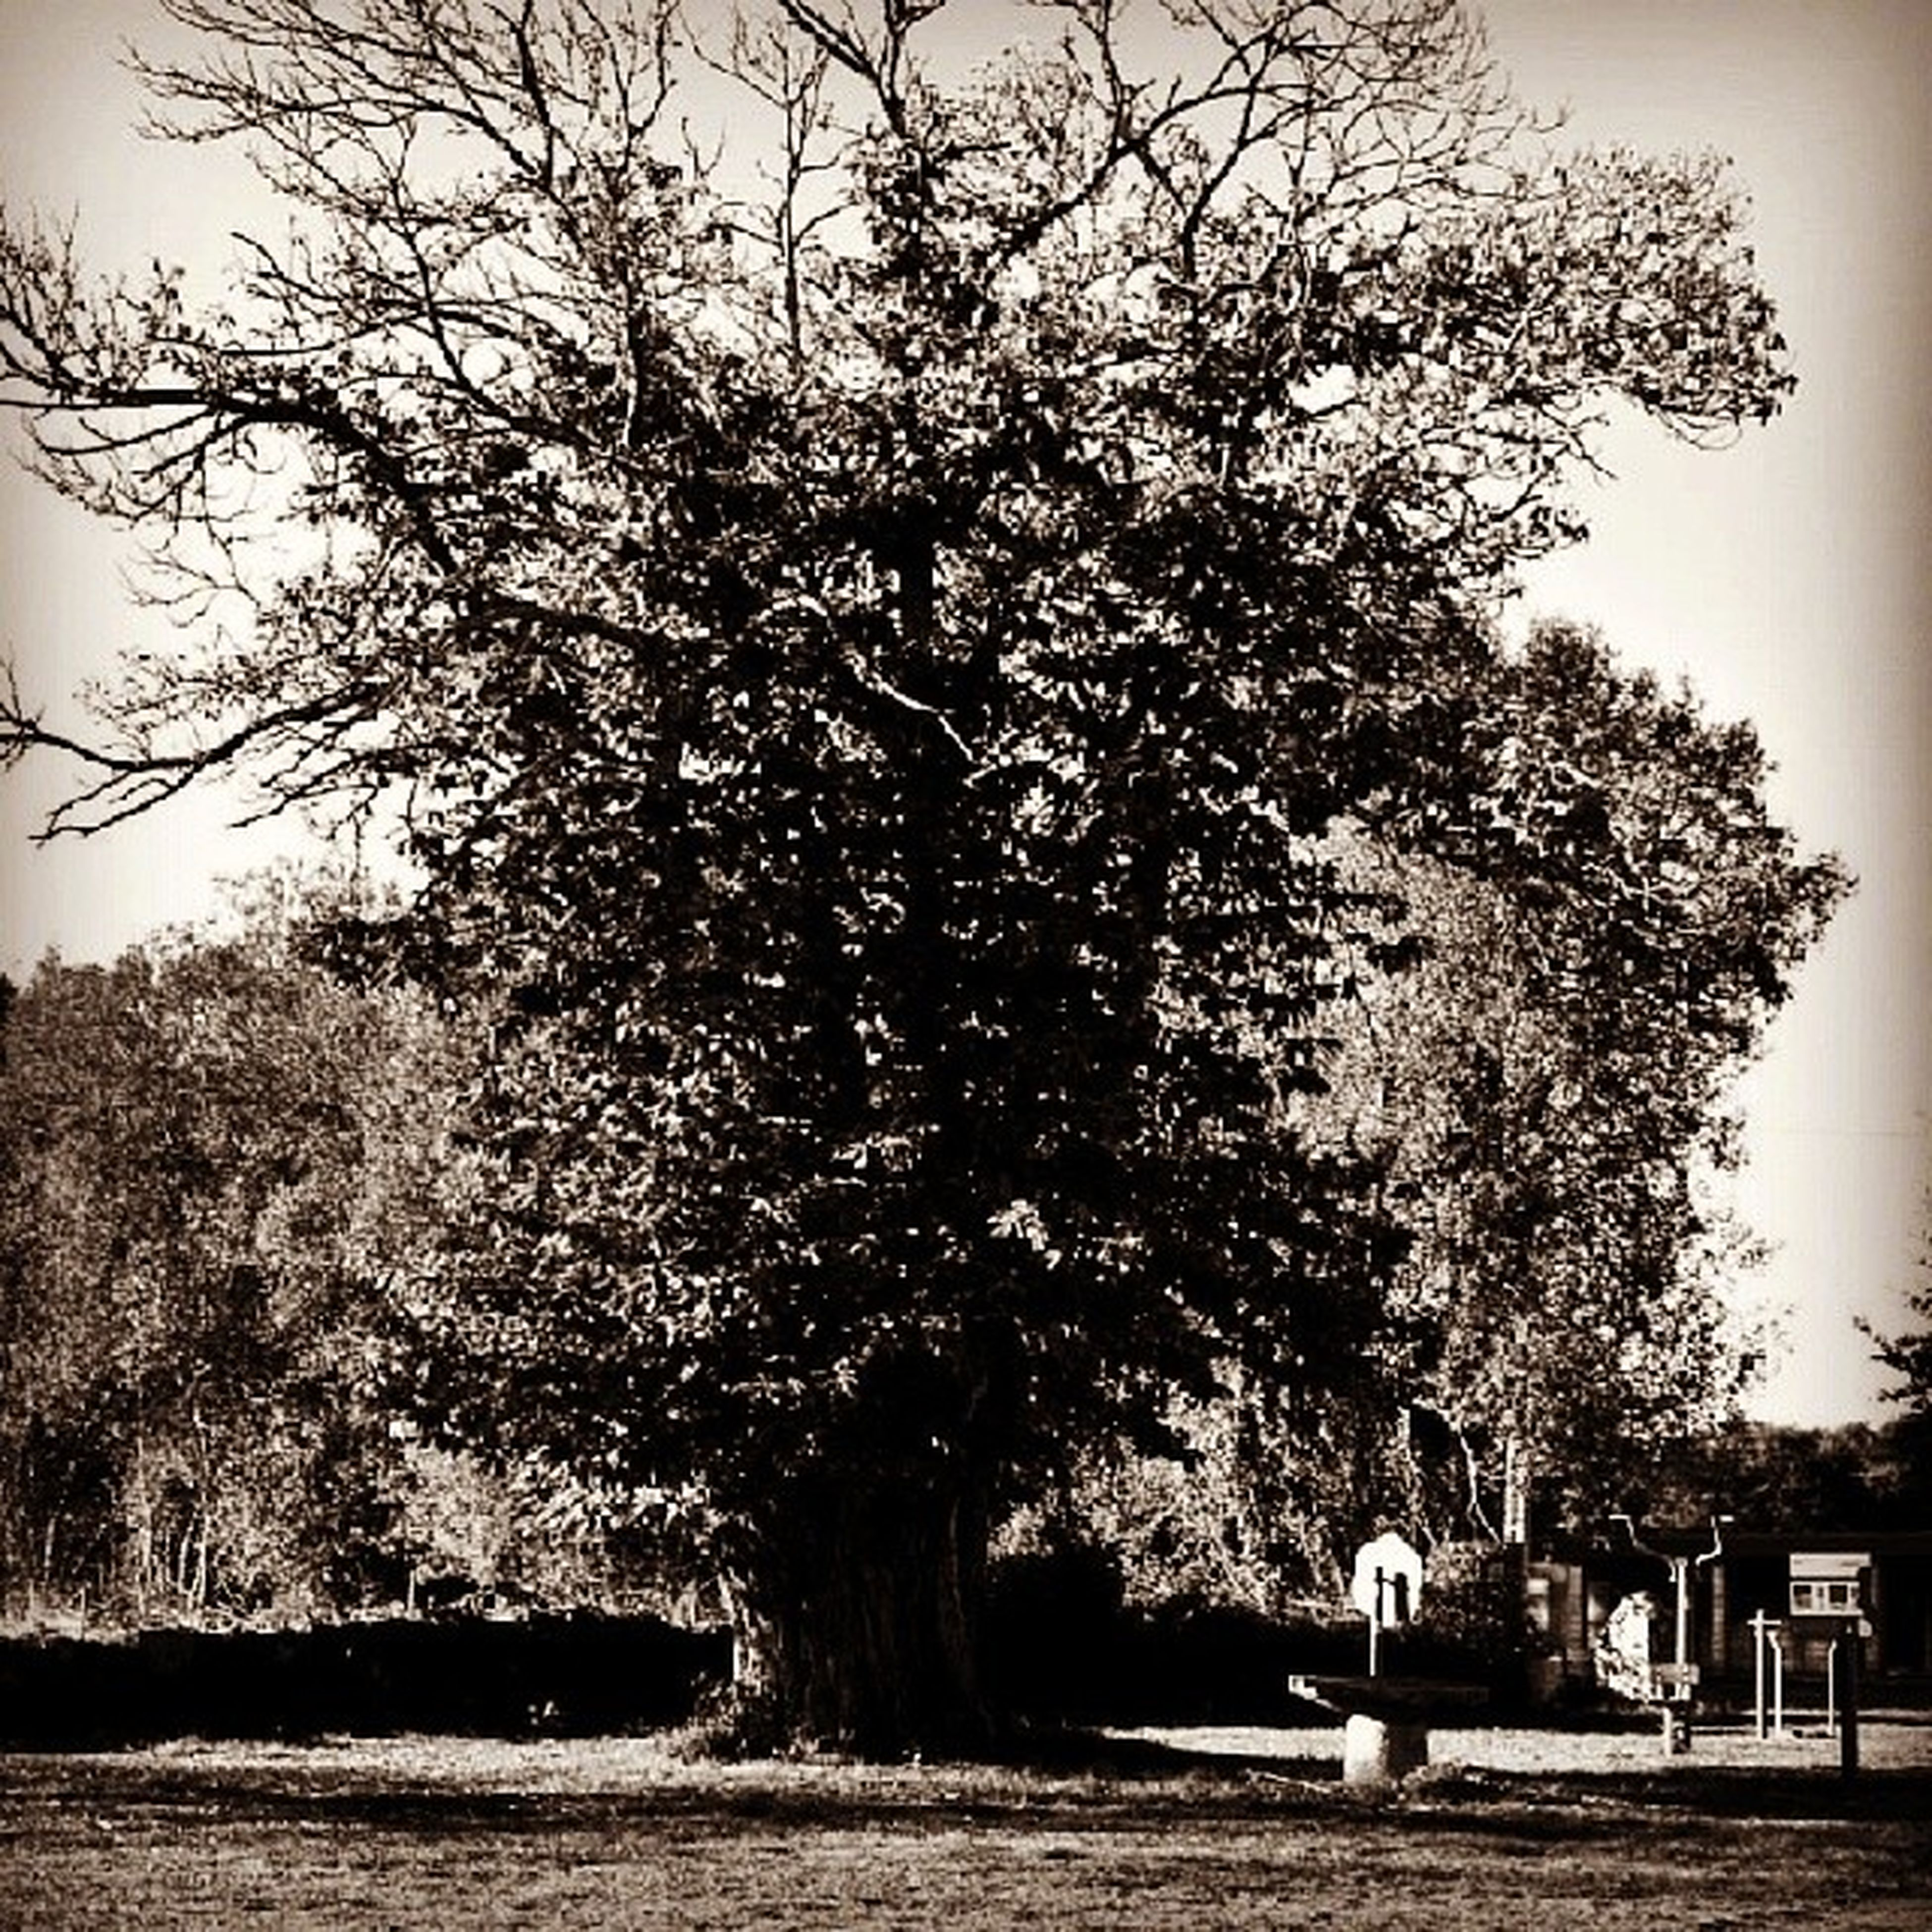 tree, bare tree, branch, sky, tree trunk, park - man made space, nature, bench, tranquility, growth, day, clear sky, tranquil scene, outdoors, park, transportation, built structure, full length, building exterior